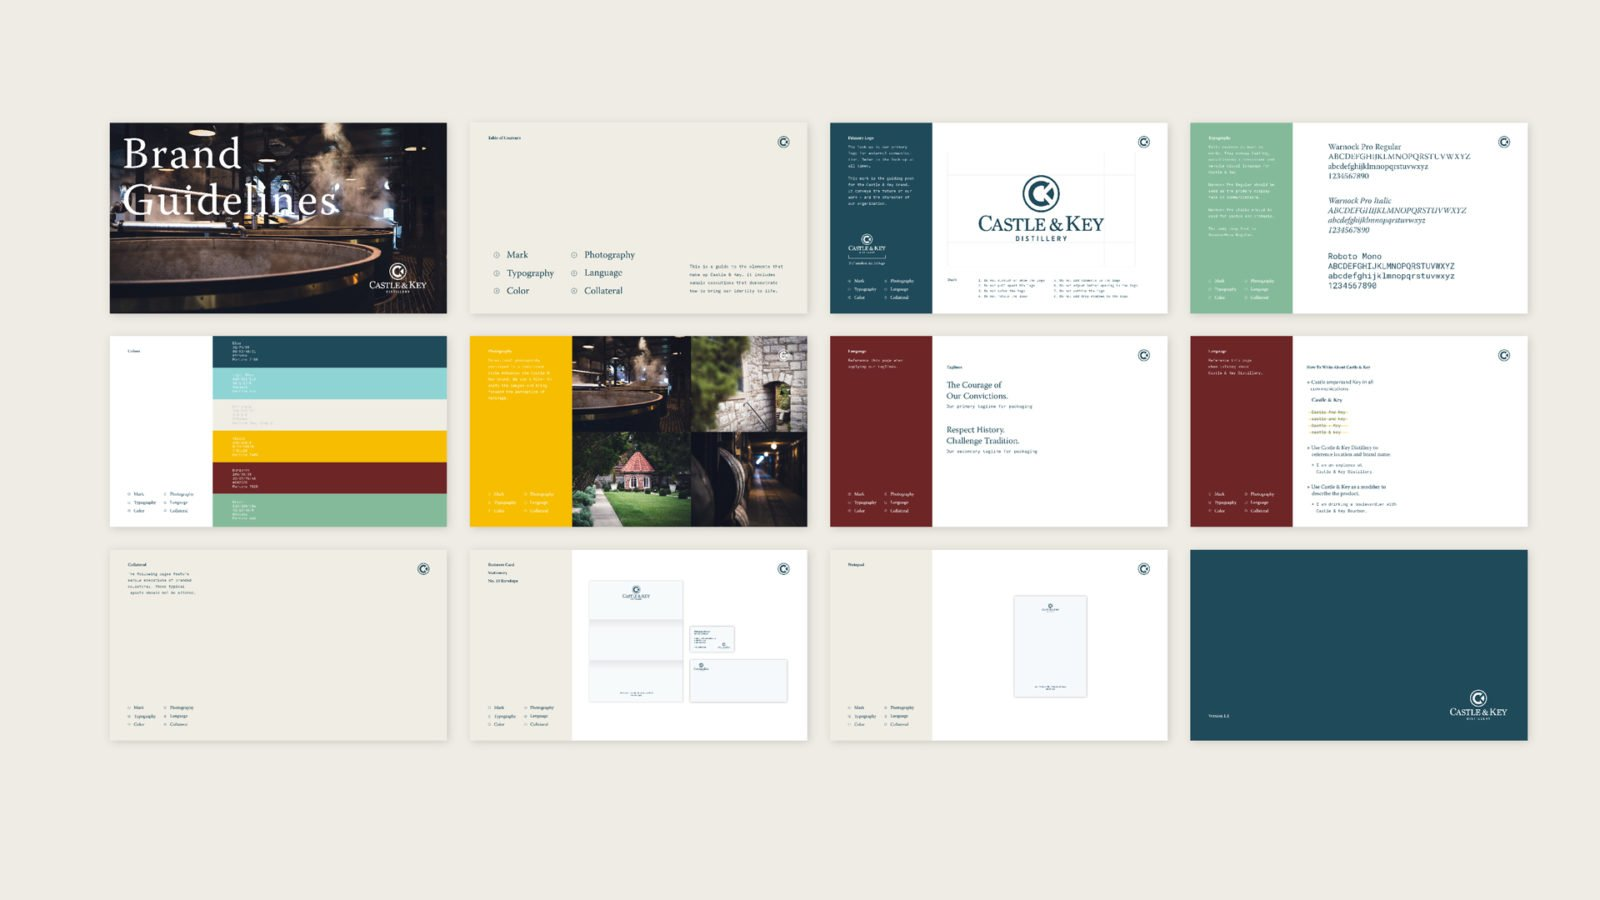 Castle & Key Distillery Brand Guidelines